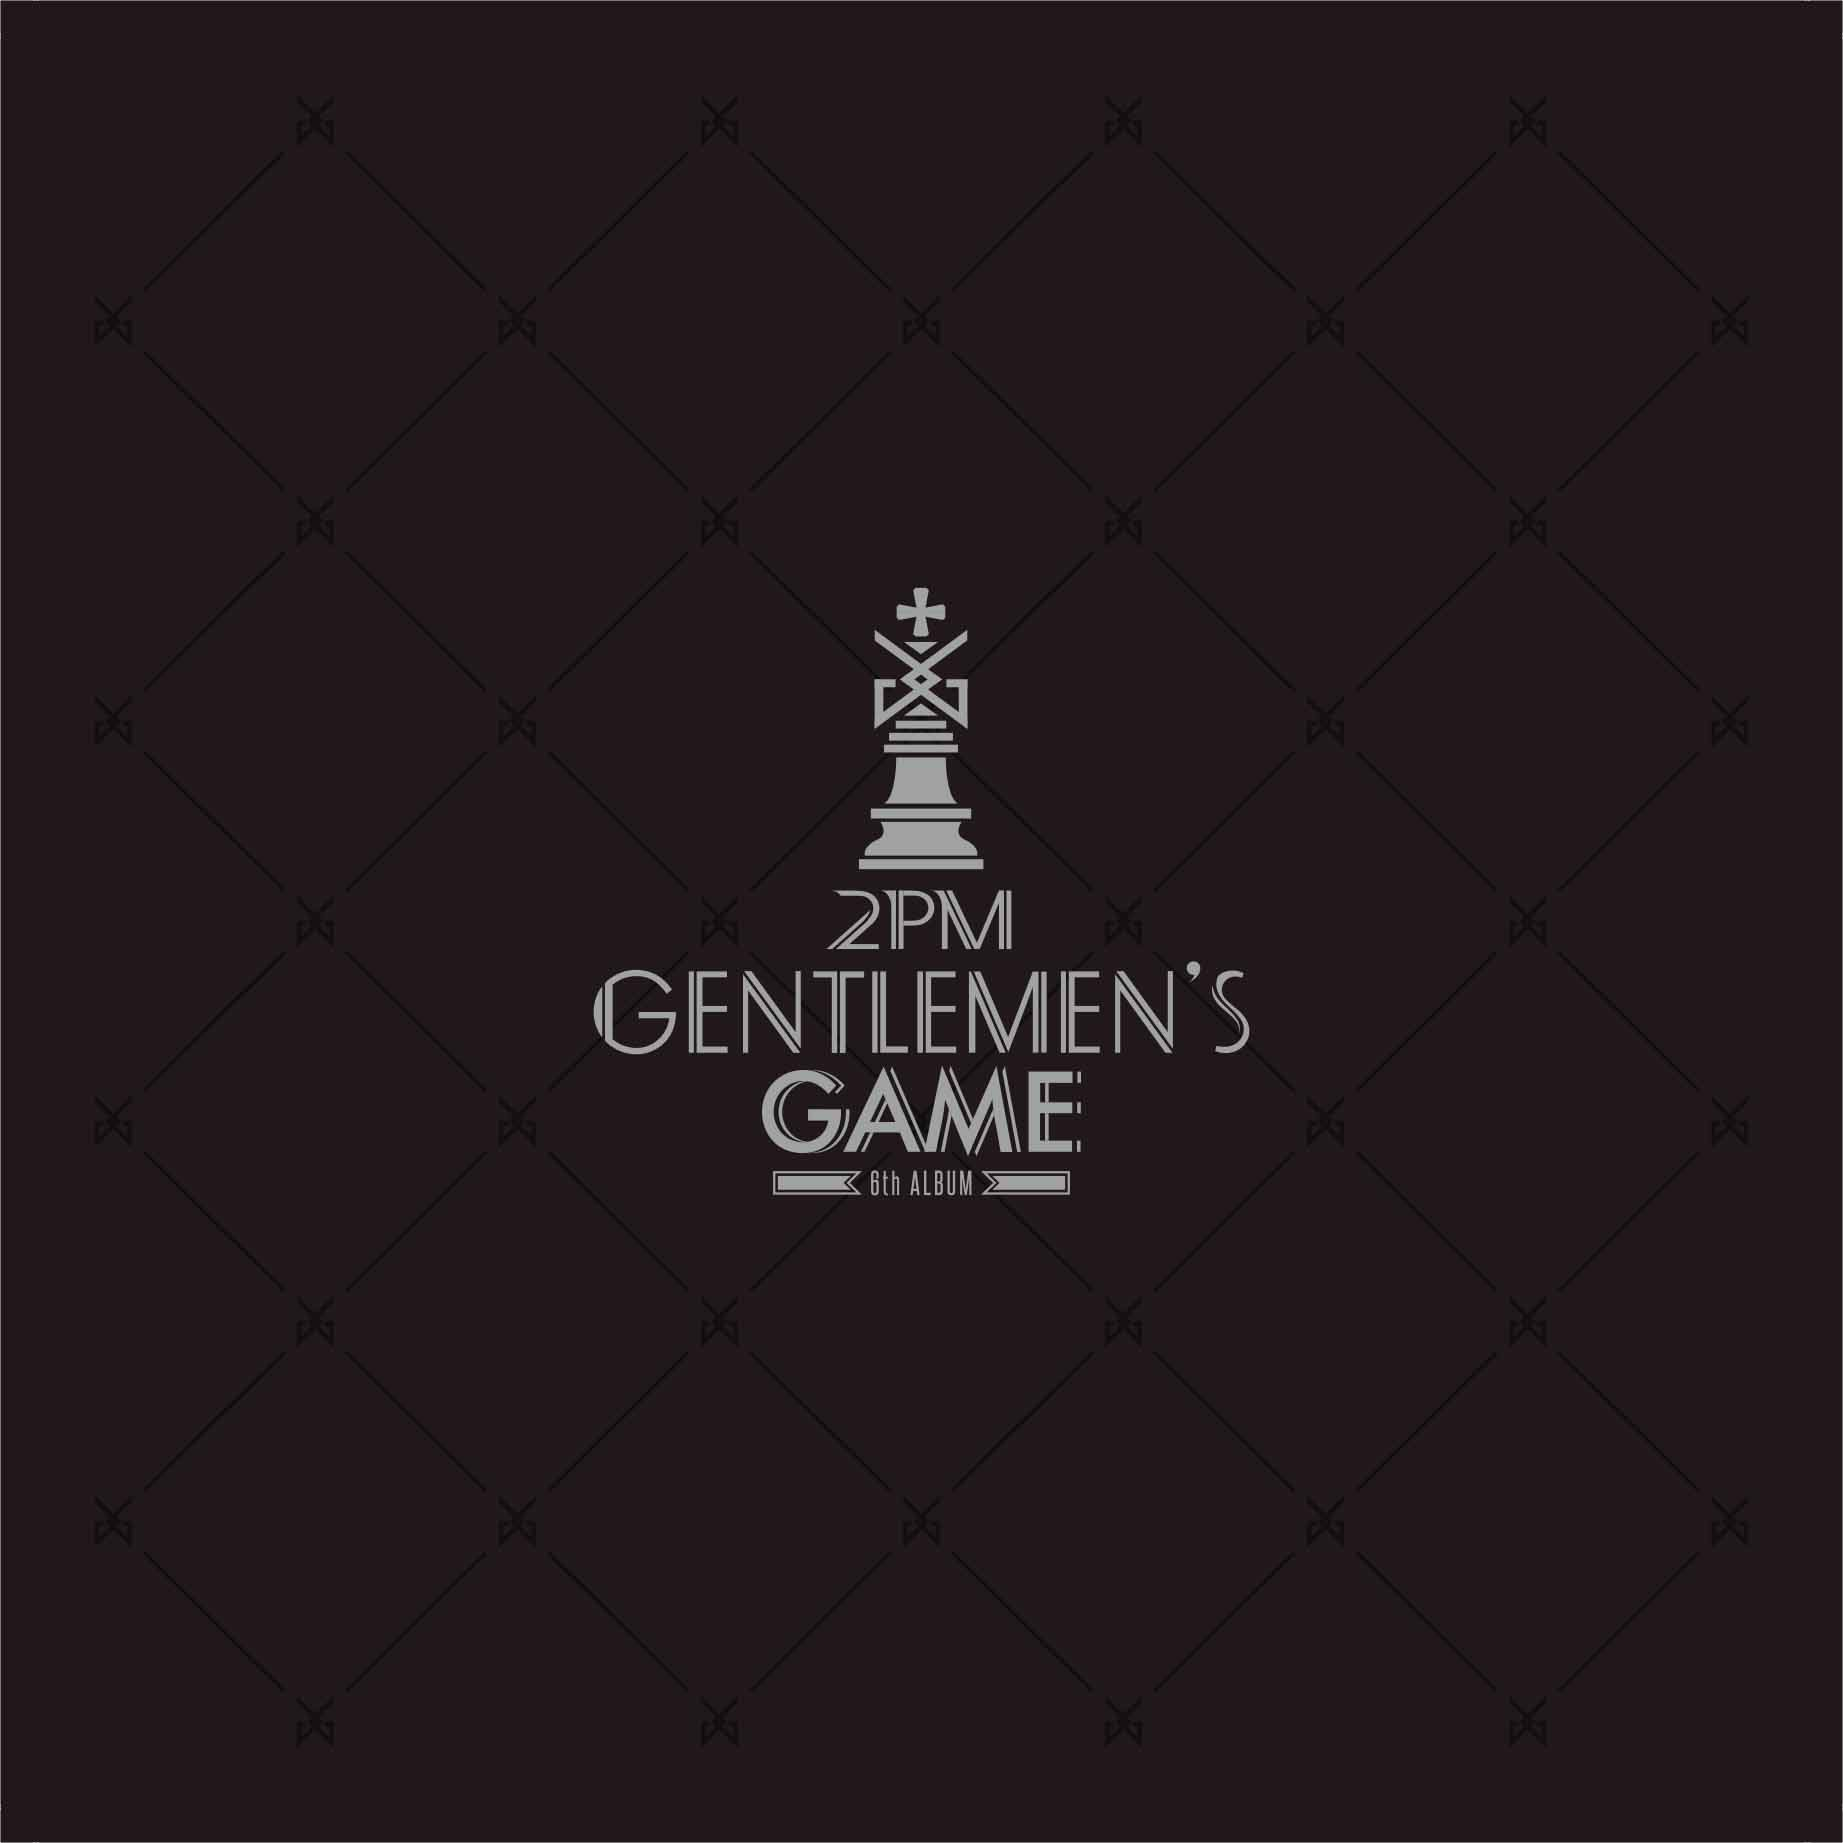 2PM-第六張正規專輯 GENTLEMEN'S GAME《CD+DVD》